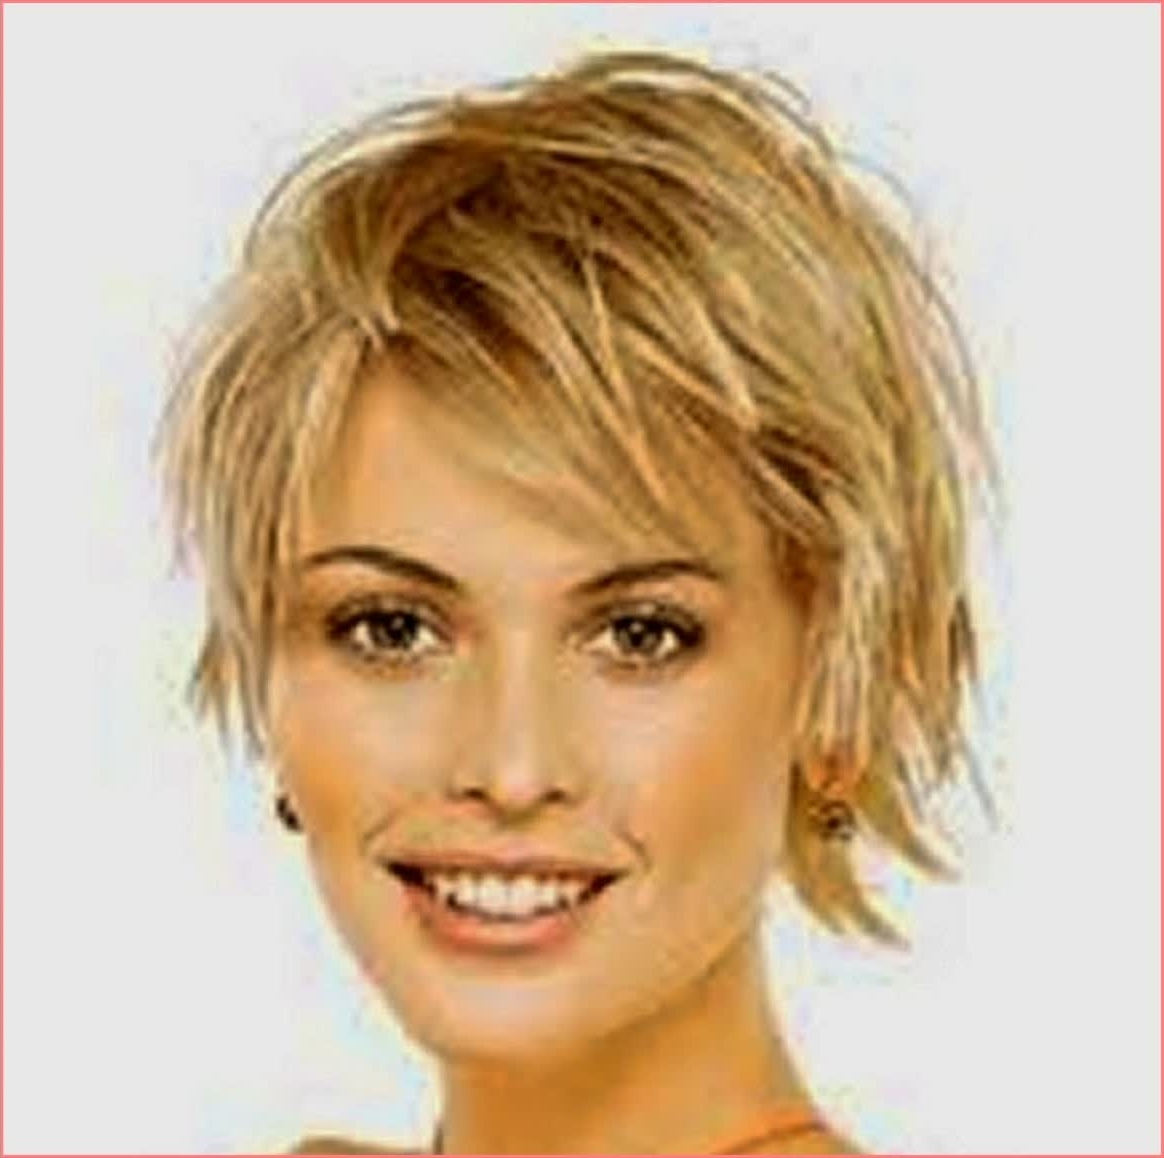 Fashionable Short Shag Haircuts For Women Inside Top Haircuts Short Shag Hairstyles For Women – Best Hairstyles For (View 3 of 15)